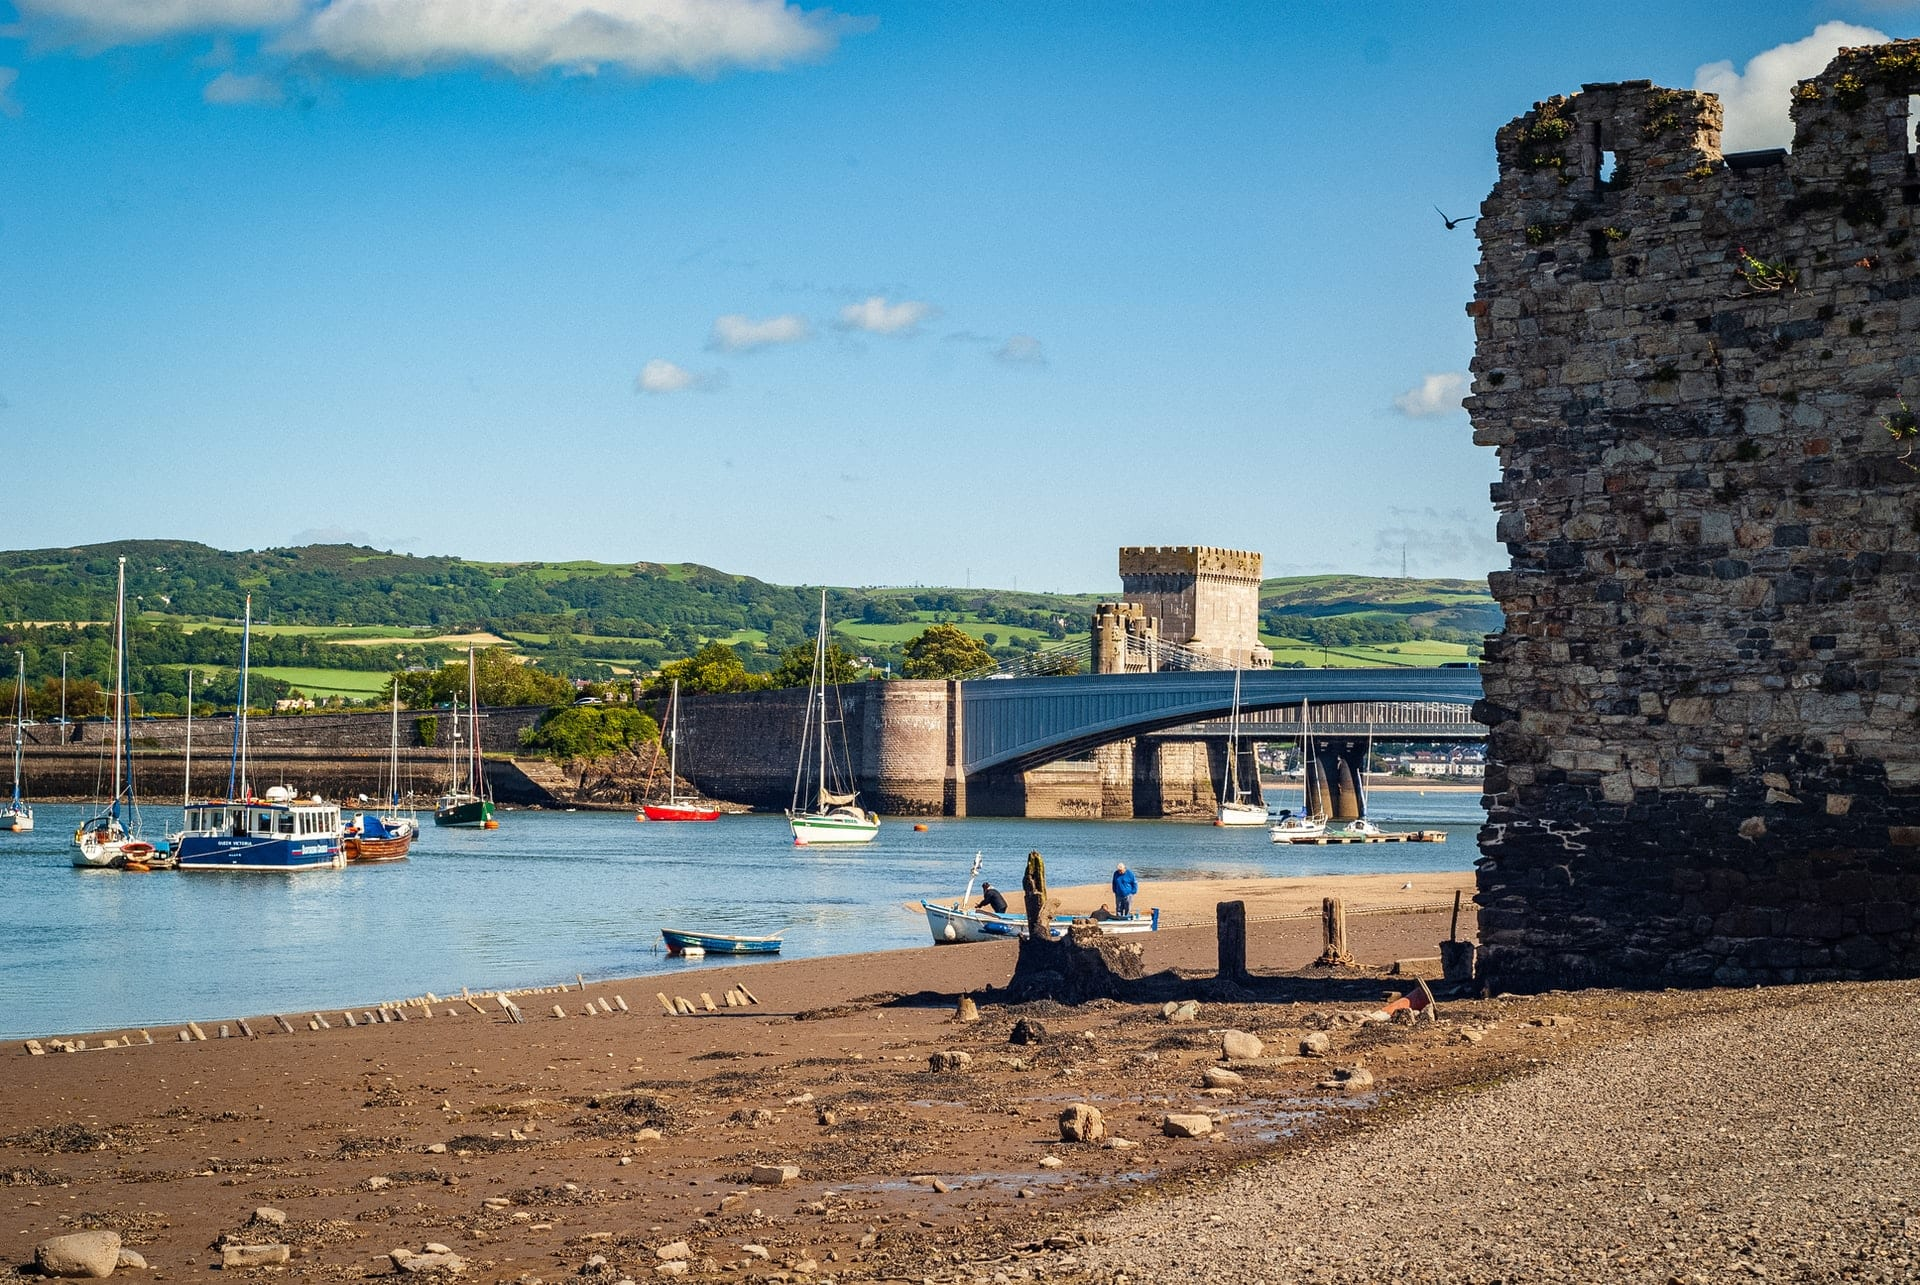 Visiting Conwy in North Wales is on my 2021 travel wishlist